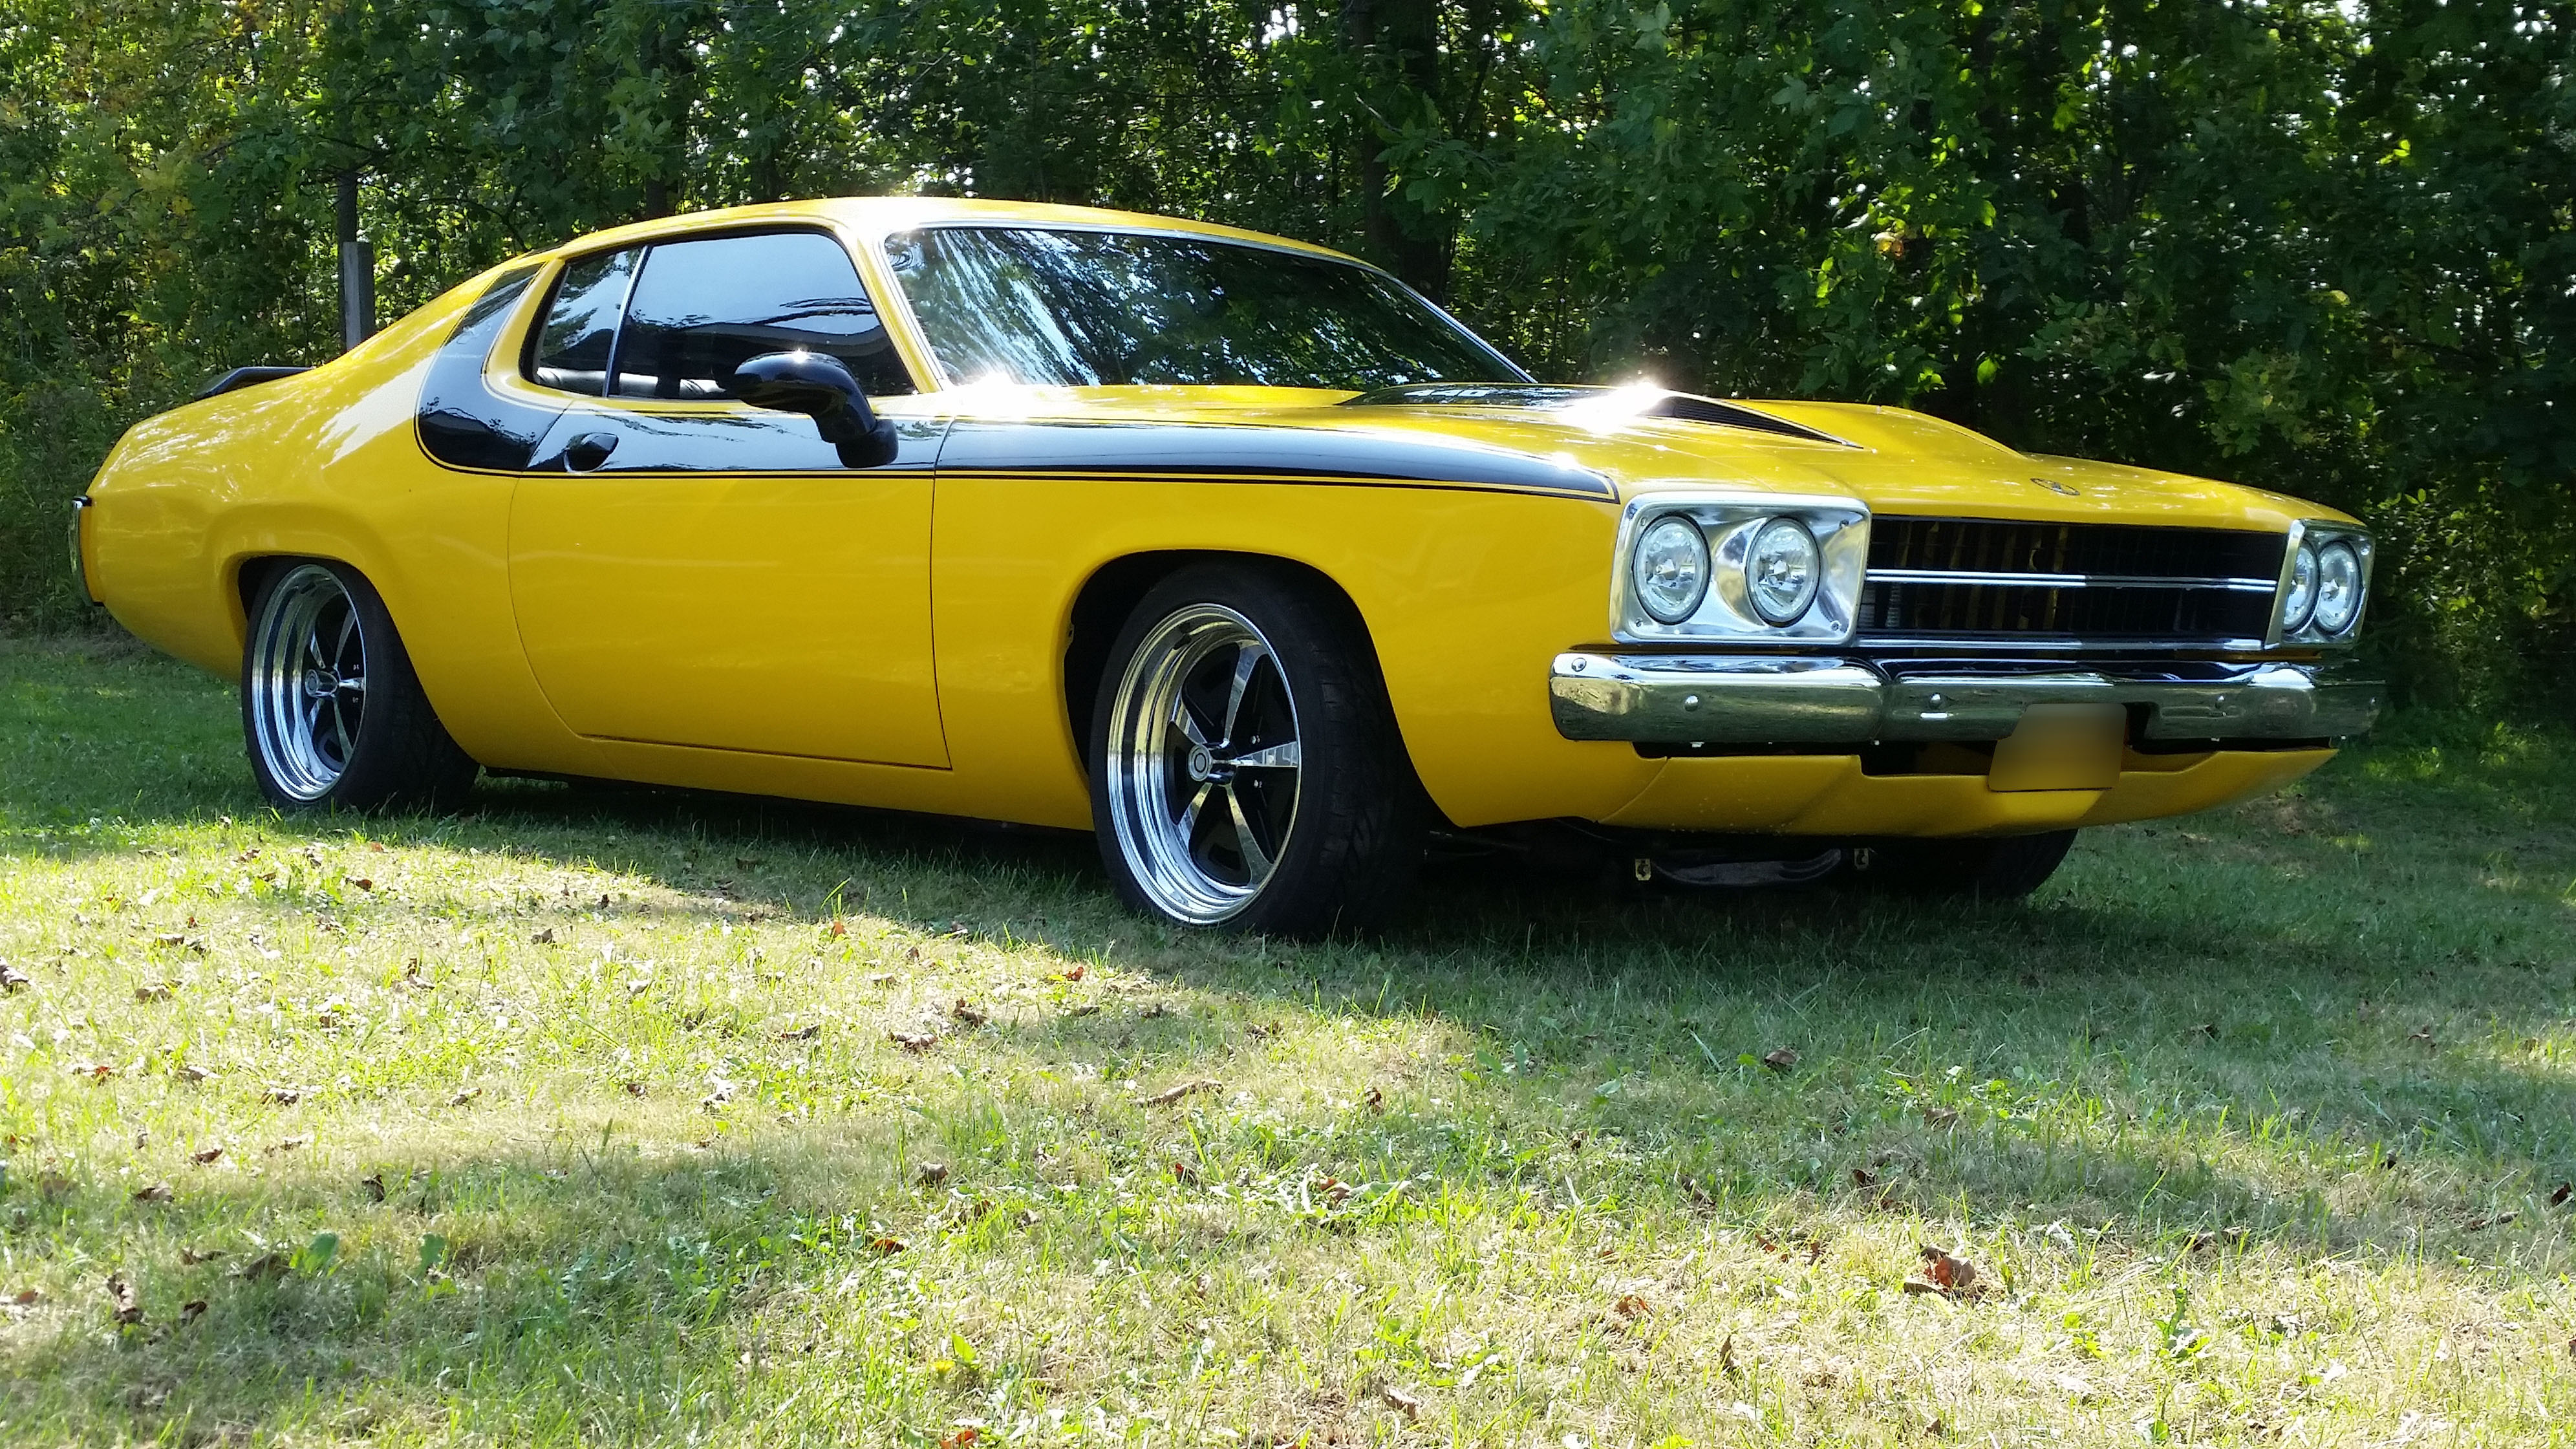 Chevy Chevelle 2016 >> 1974 Plymouth Road Runner - S & S Auto Body of Clarence Inc.